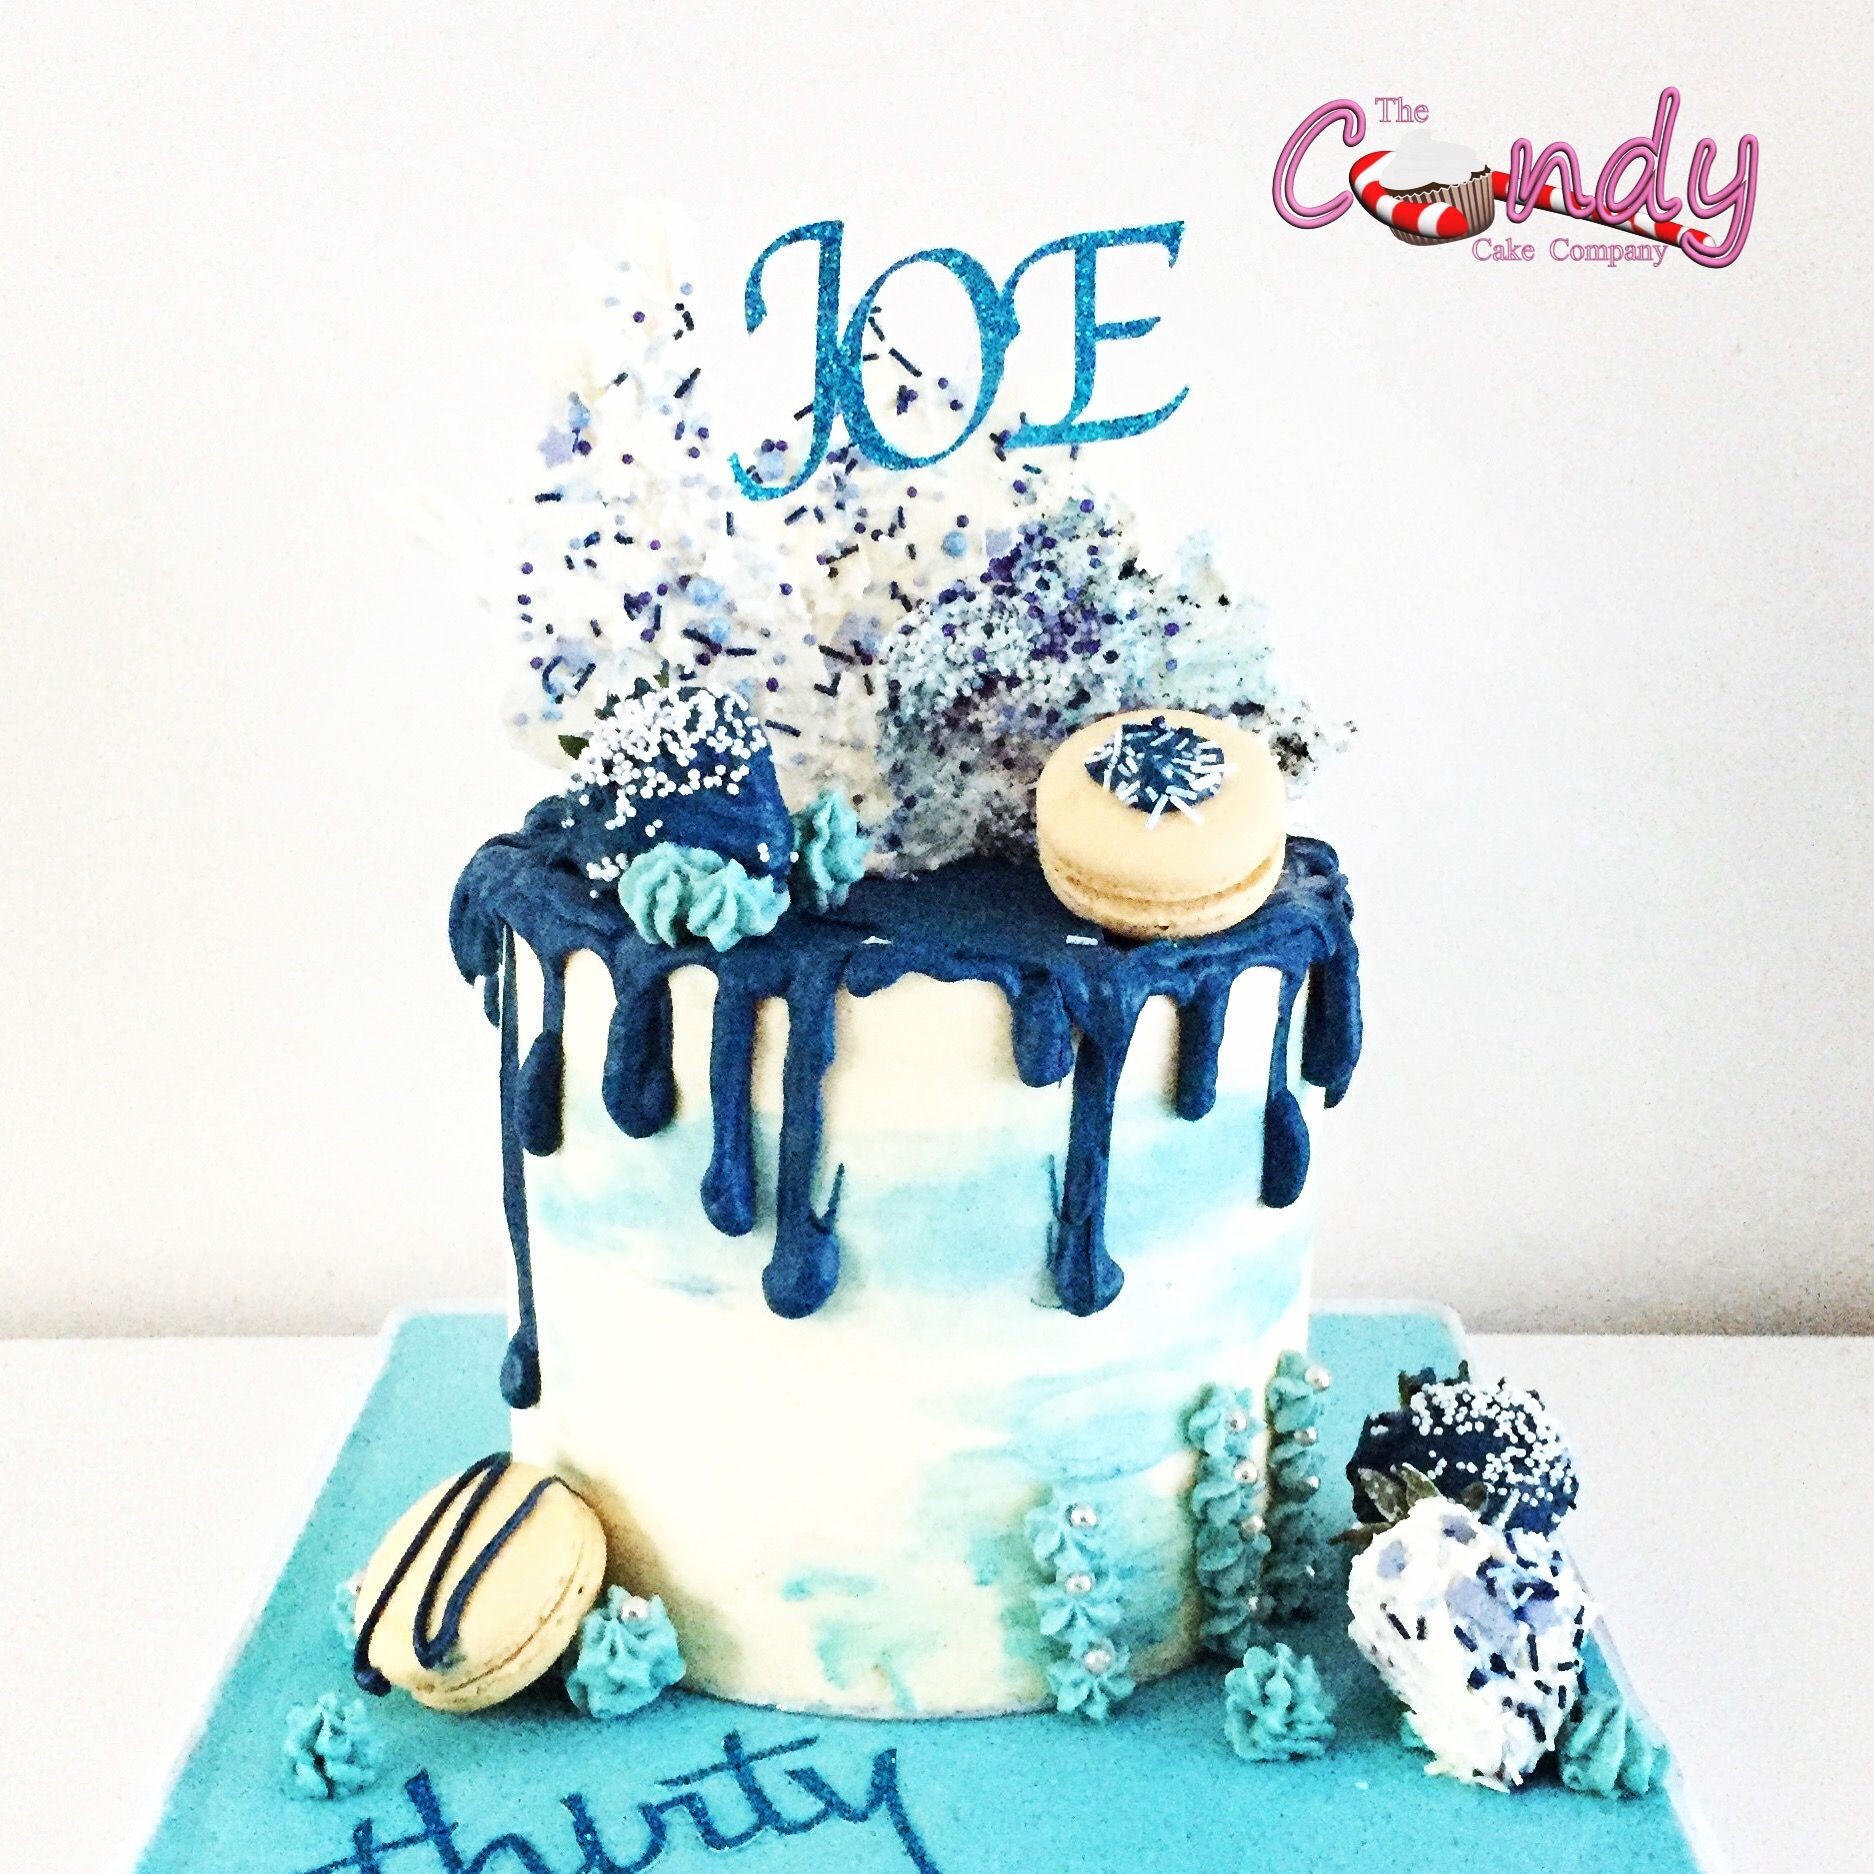 Drip cake for the man in your life wwwthecandycakecompanycom